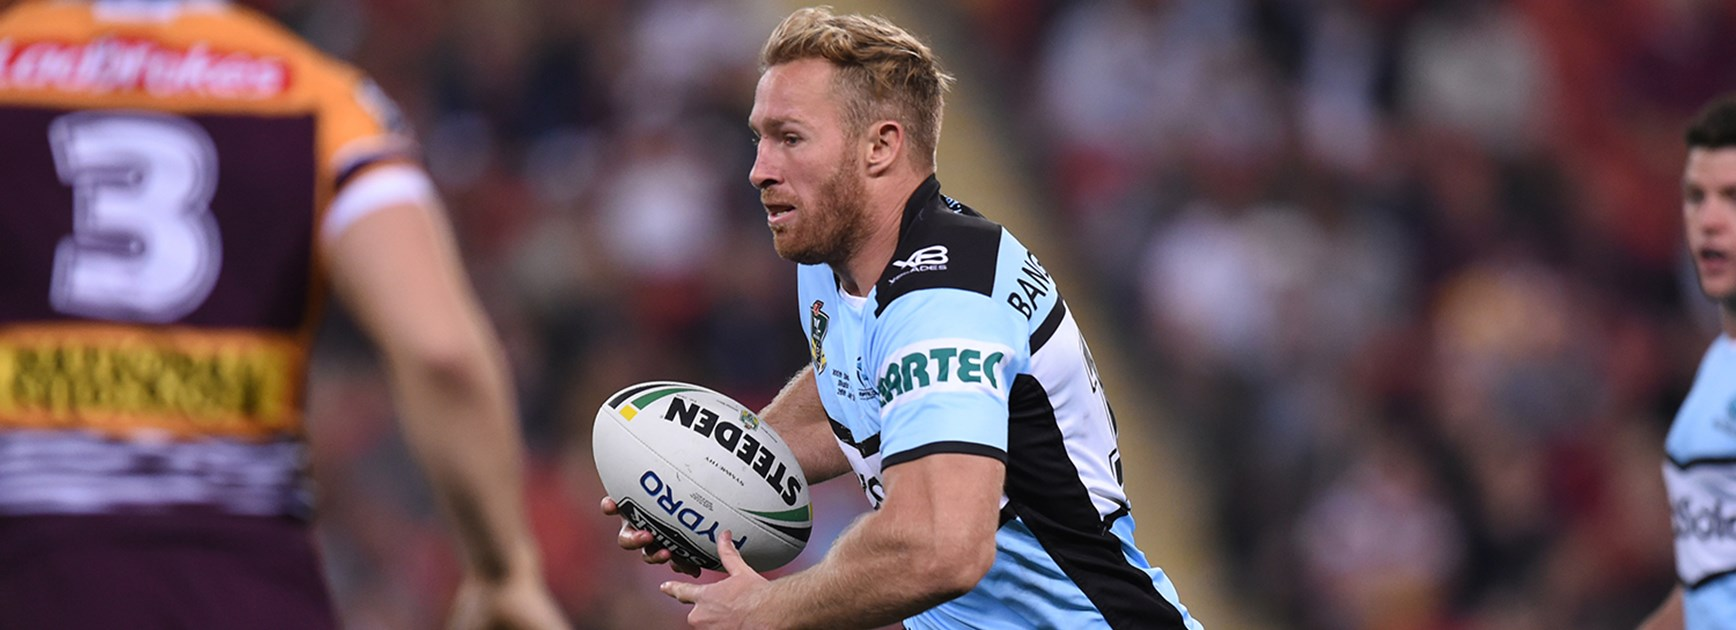 Tough loss for Sharks in Brisbane